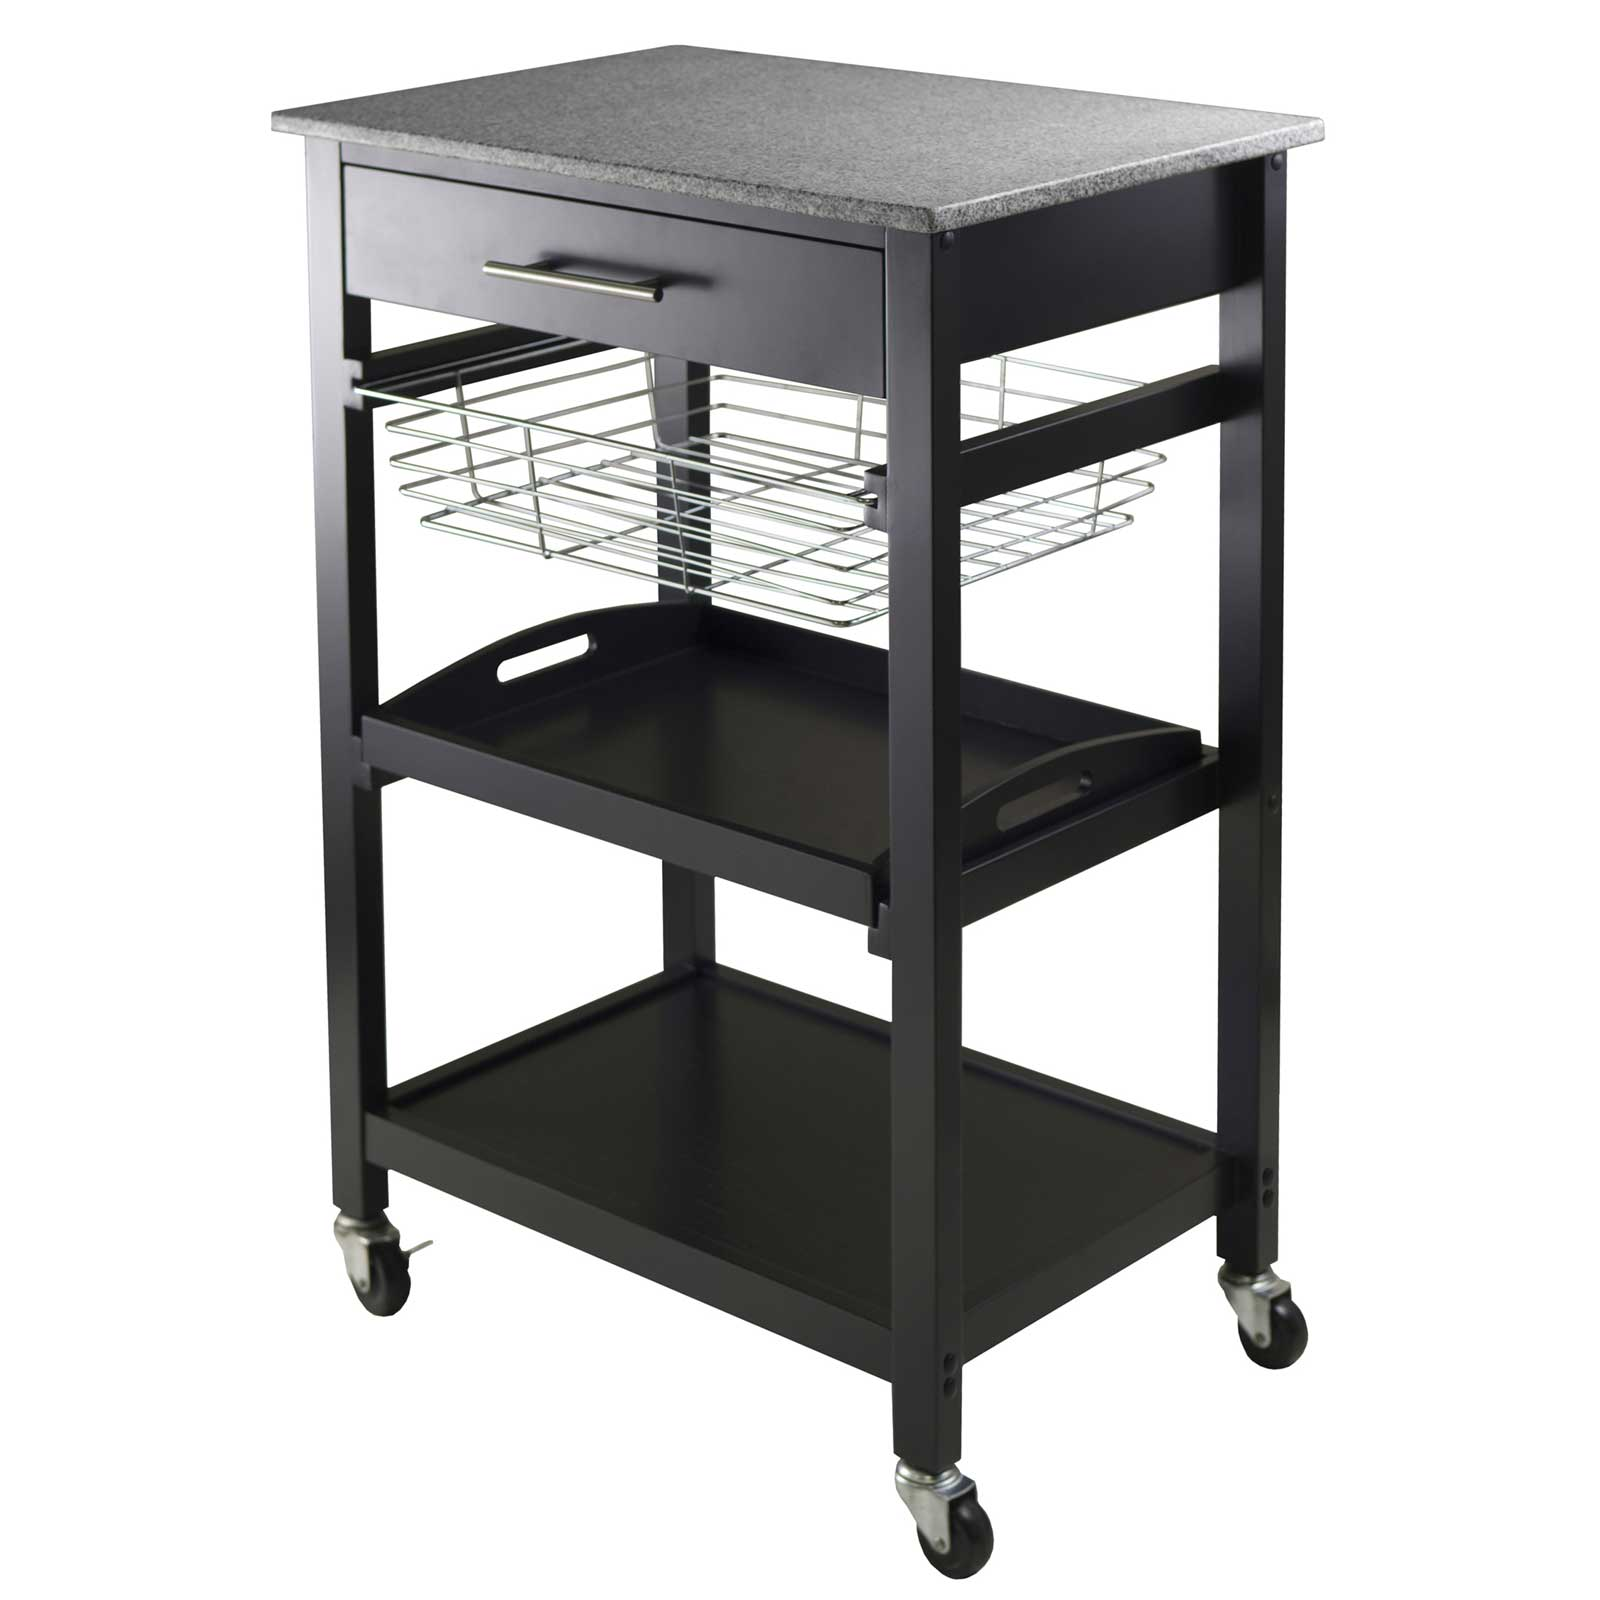 Julia Kitchen Utility Cart By Winsome Price: $152.99